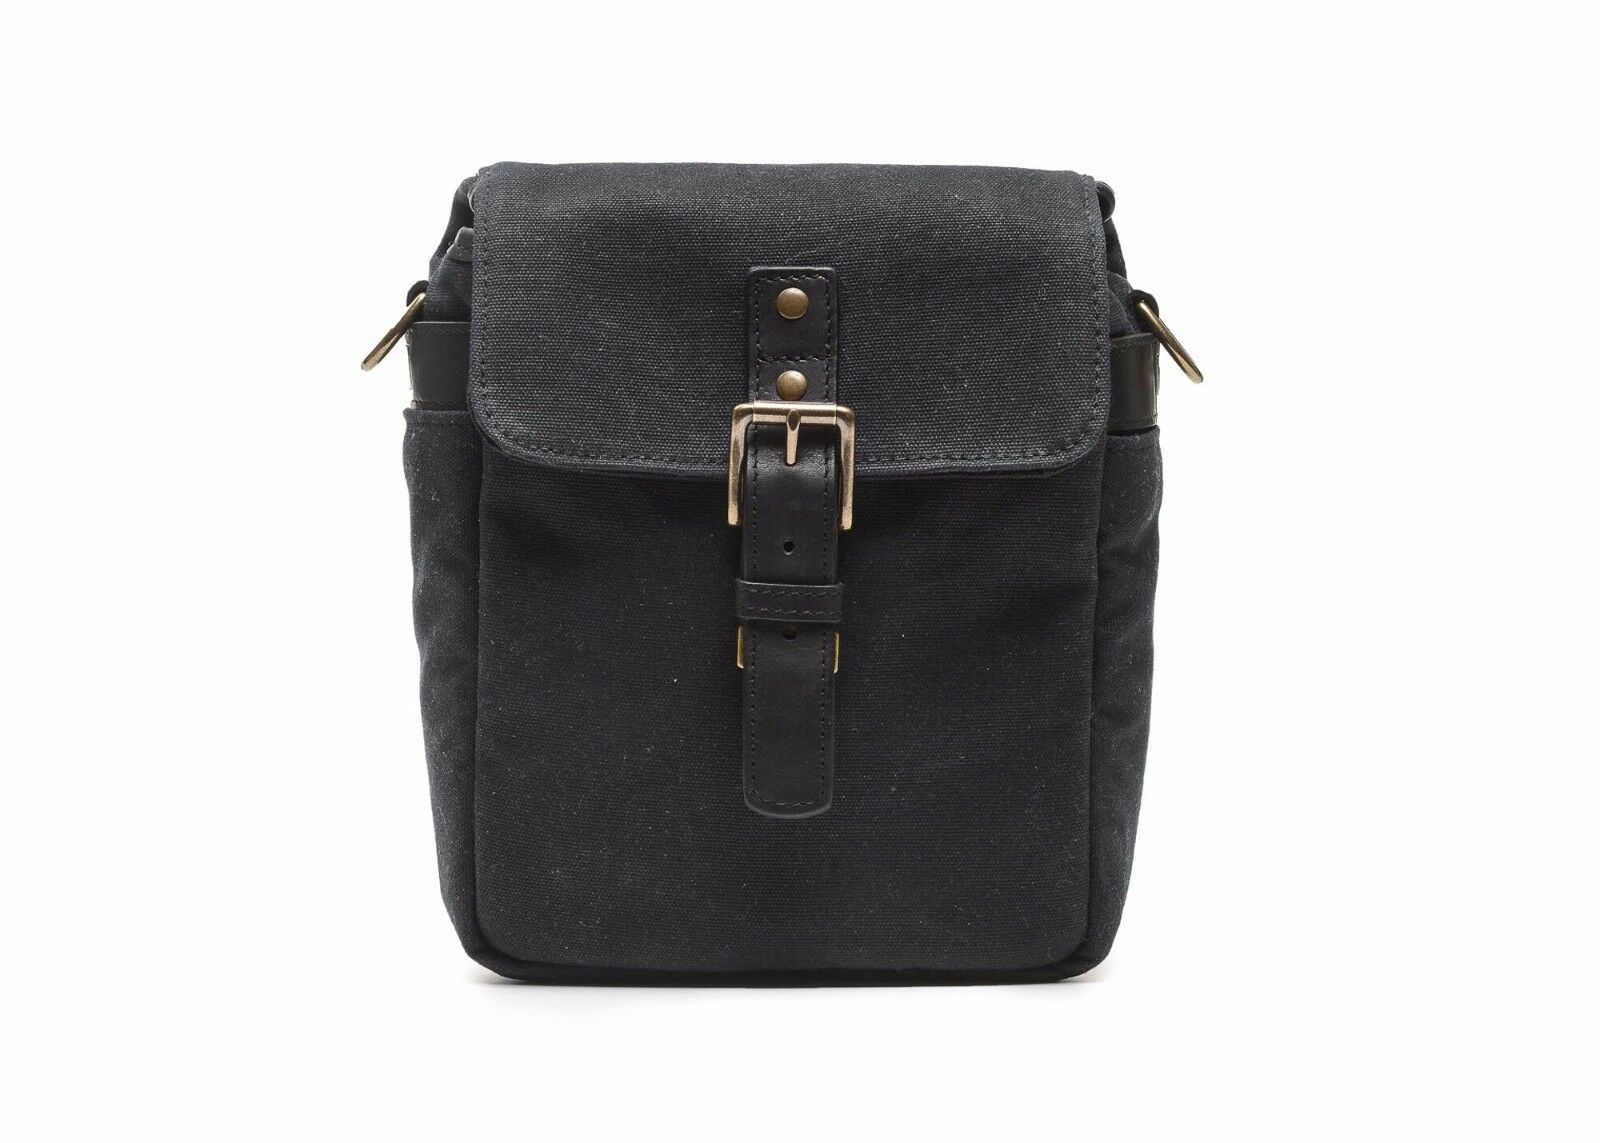 Ona Canvas Bond Street Camera Bag (Black) -> Handcrafted Excellence